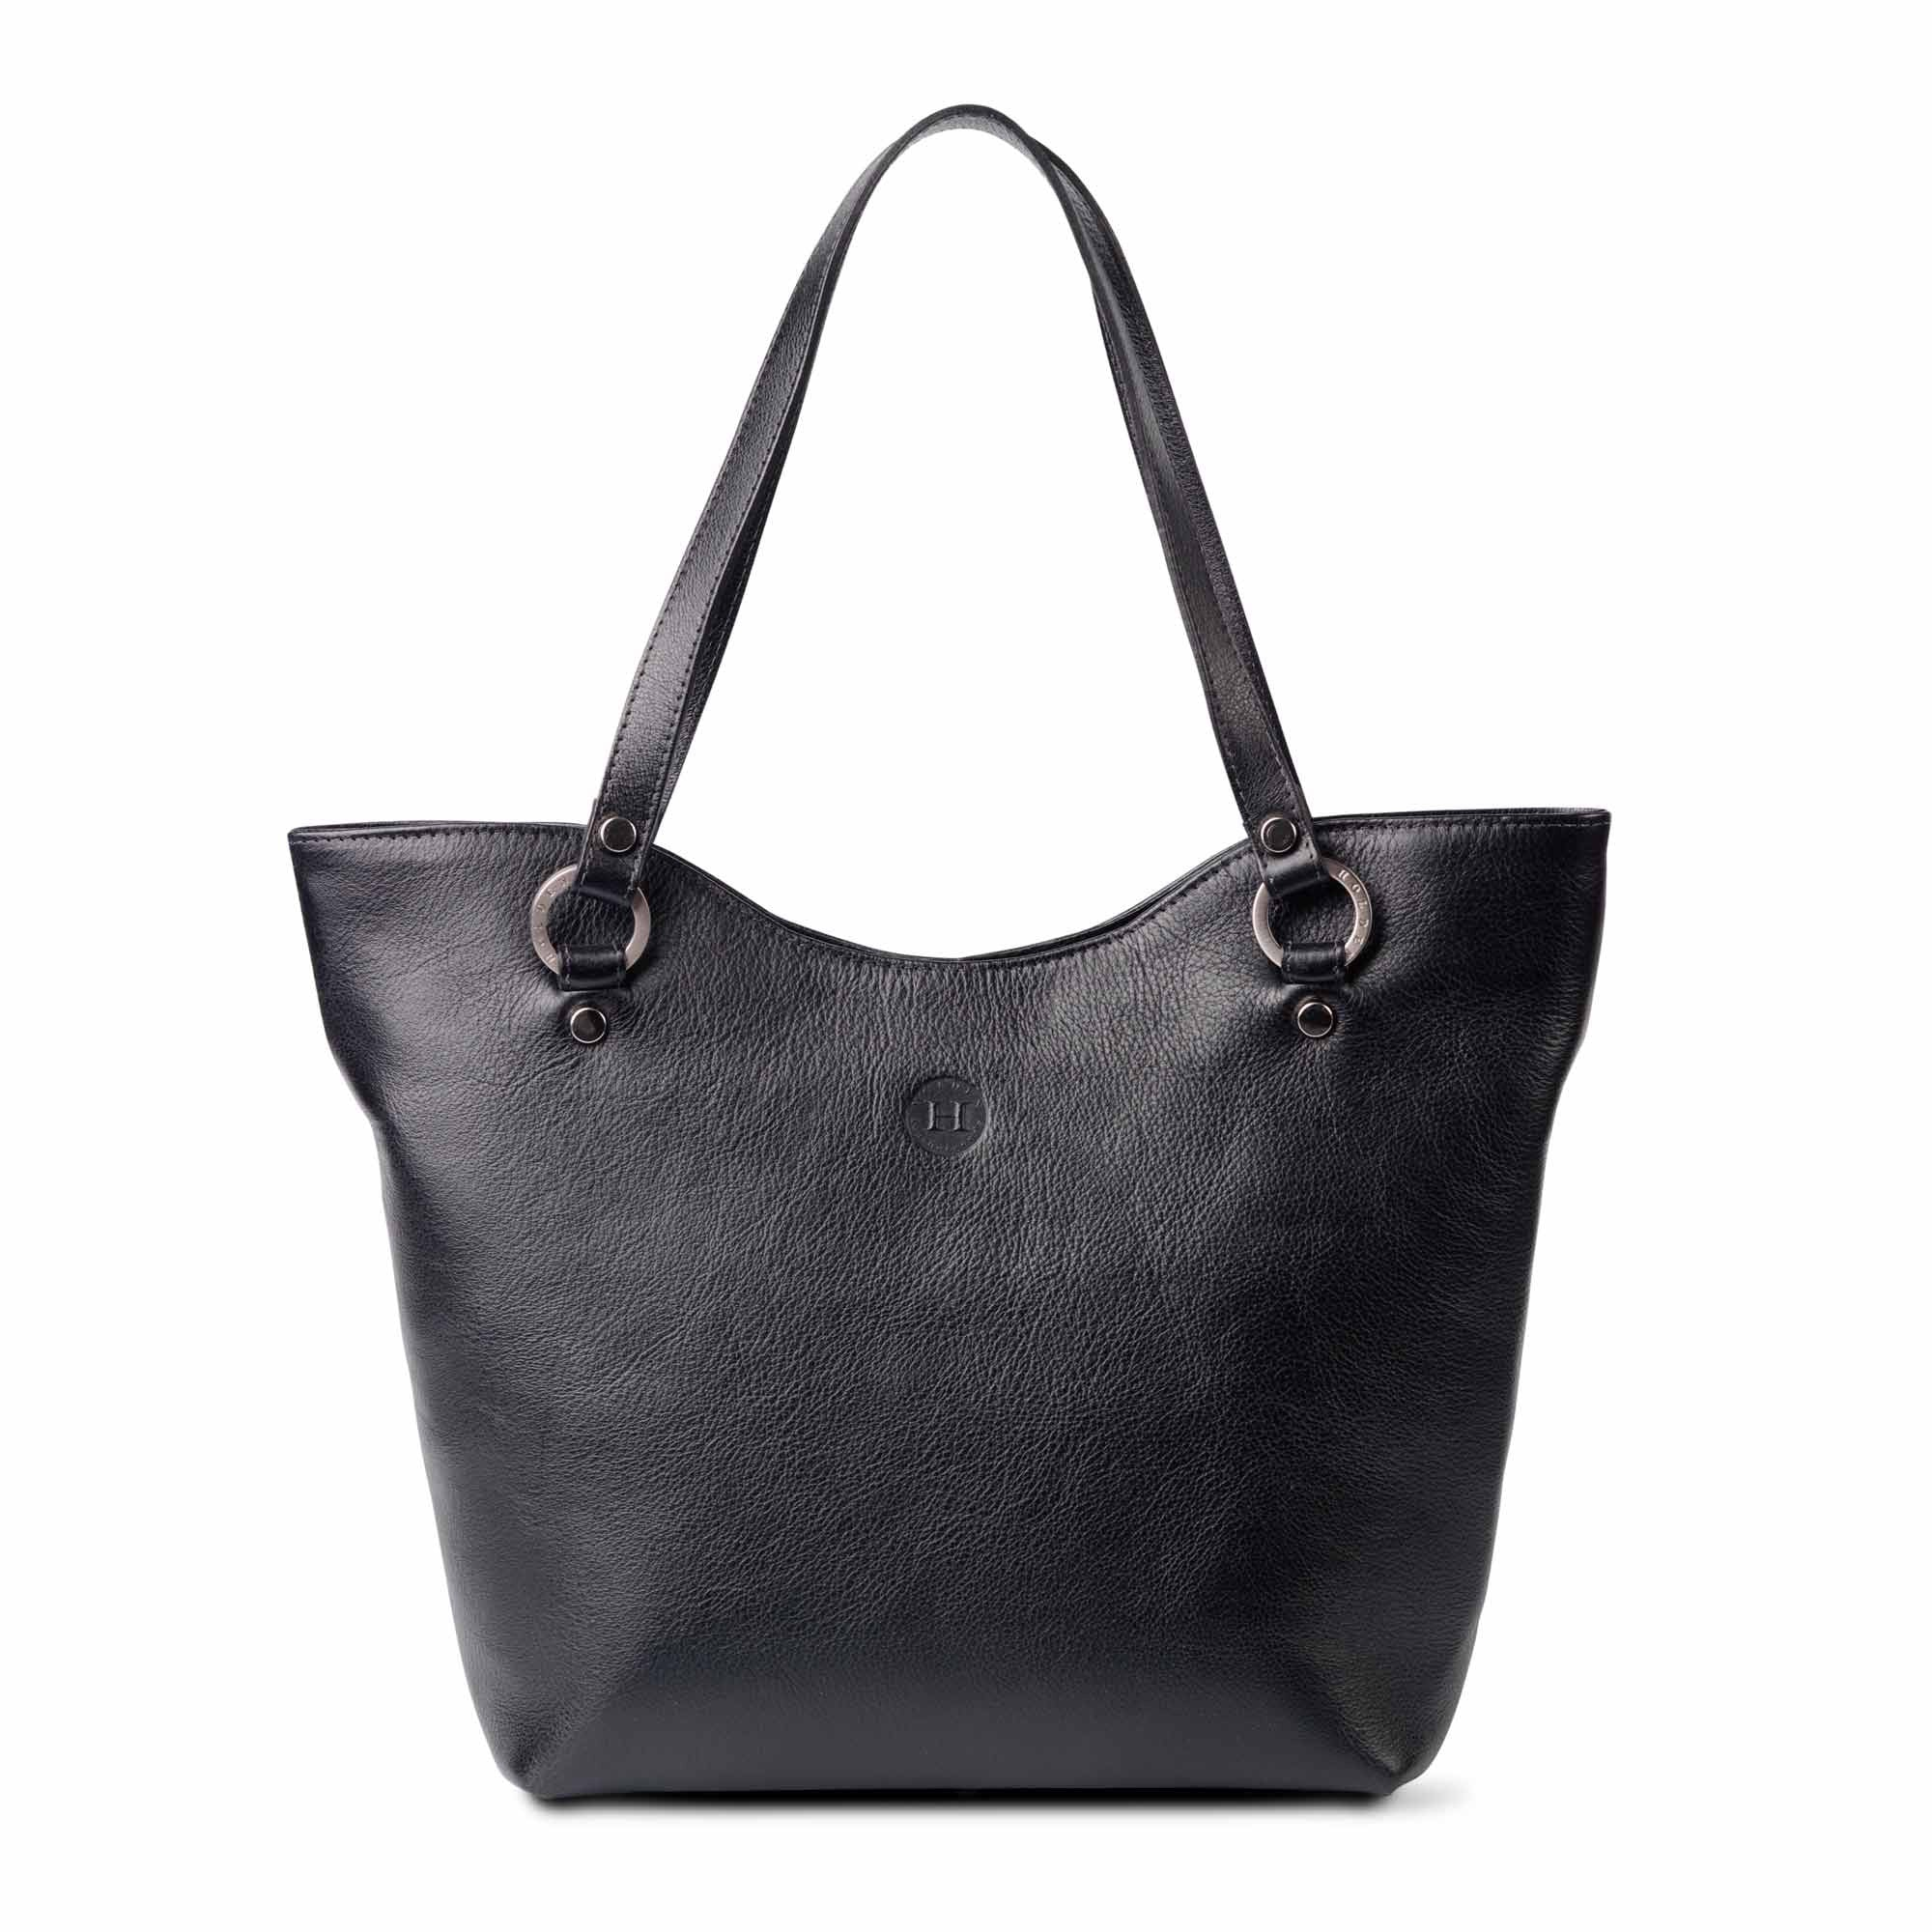 Caitlin Large Leather Tote Black - Holden Leathergoods, leather bags handmade in Ireland